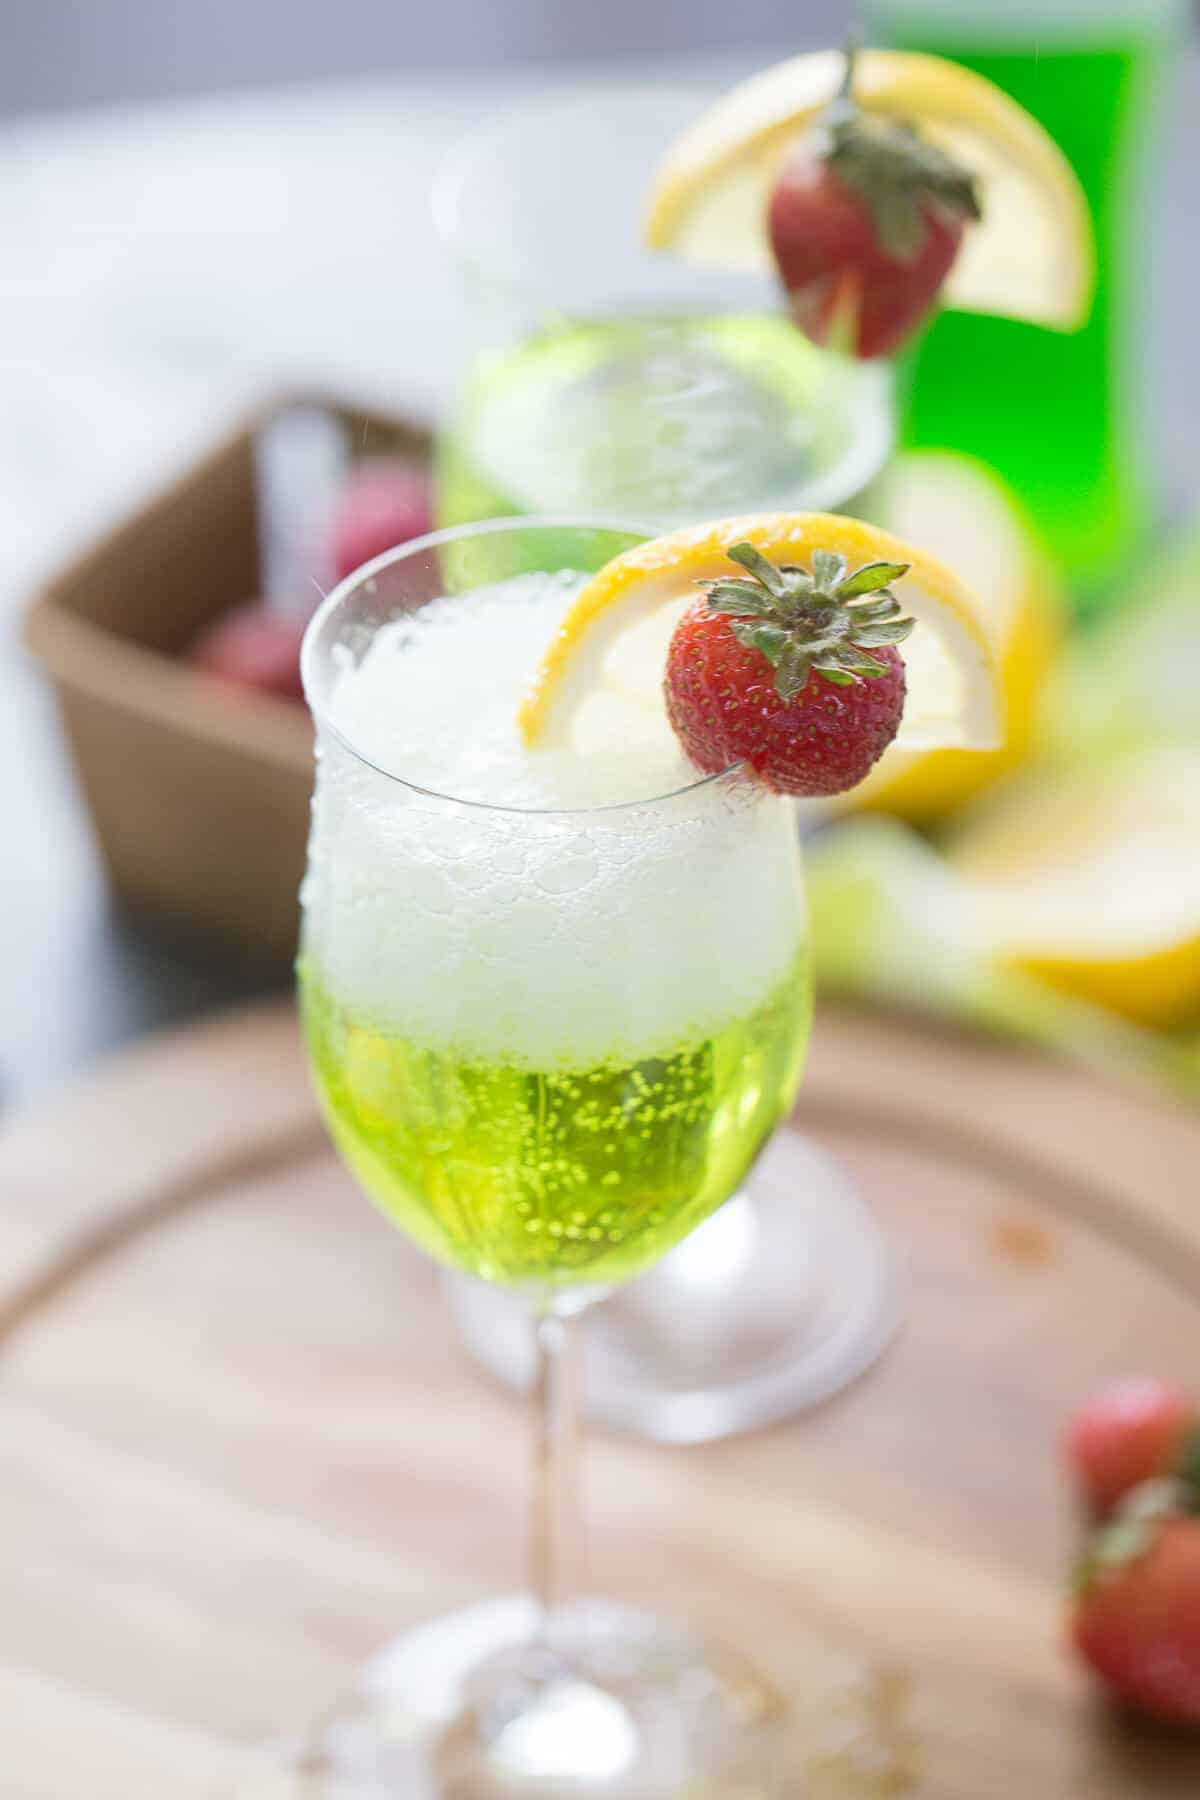 This Irish cocktail is made with Prosecco and Midori! A splash of lime tops it off!